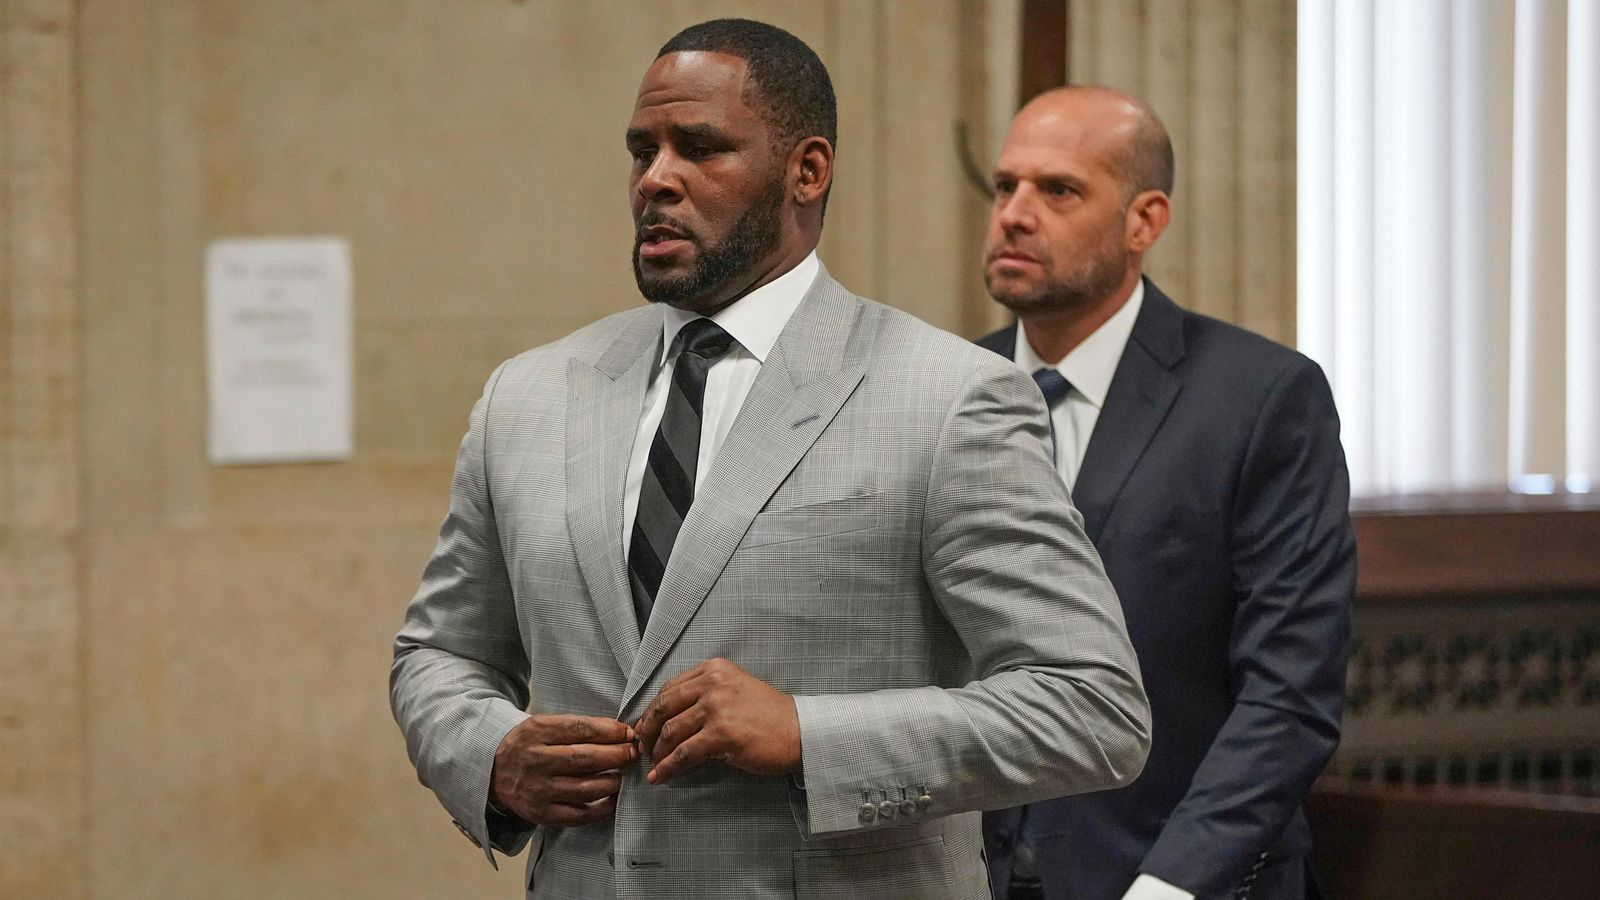 FILE - In this June 6, 2019, file photo, singer R. Kelly appears in court in Chicago. (E. Jason Wambsgans/Chicago Tribune via AP, Pool, File)